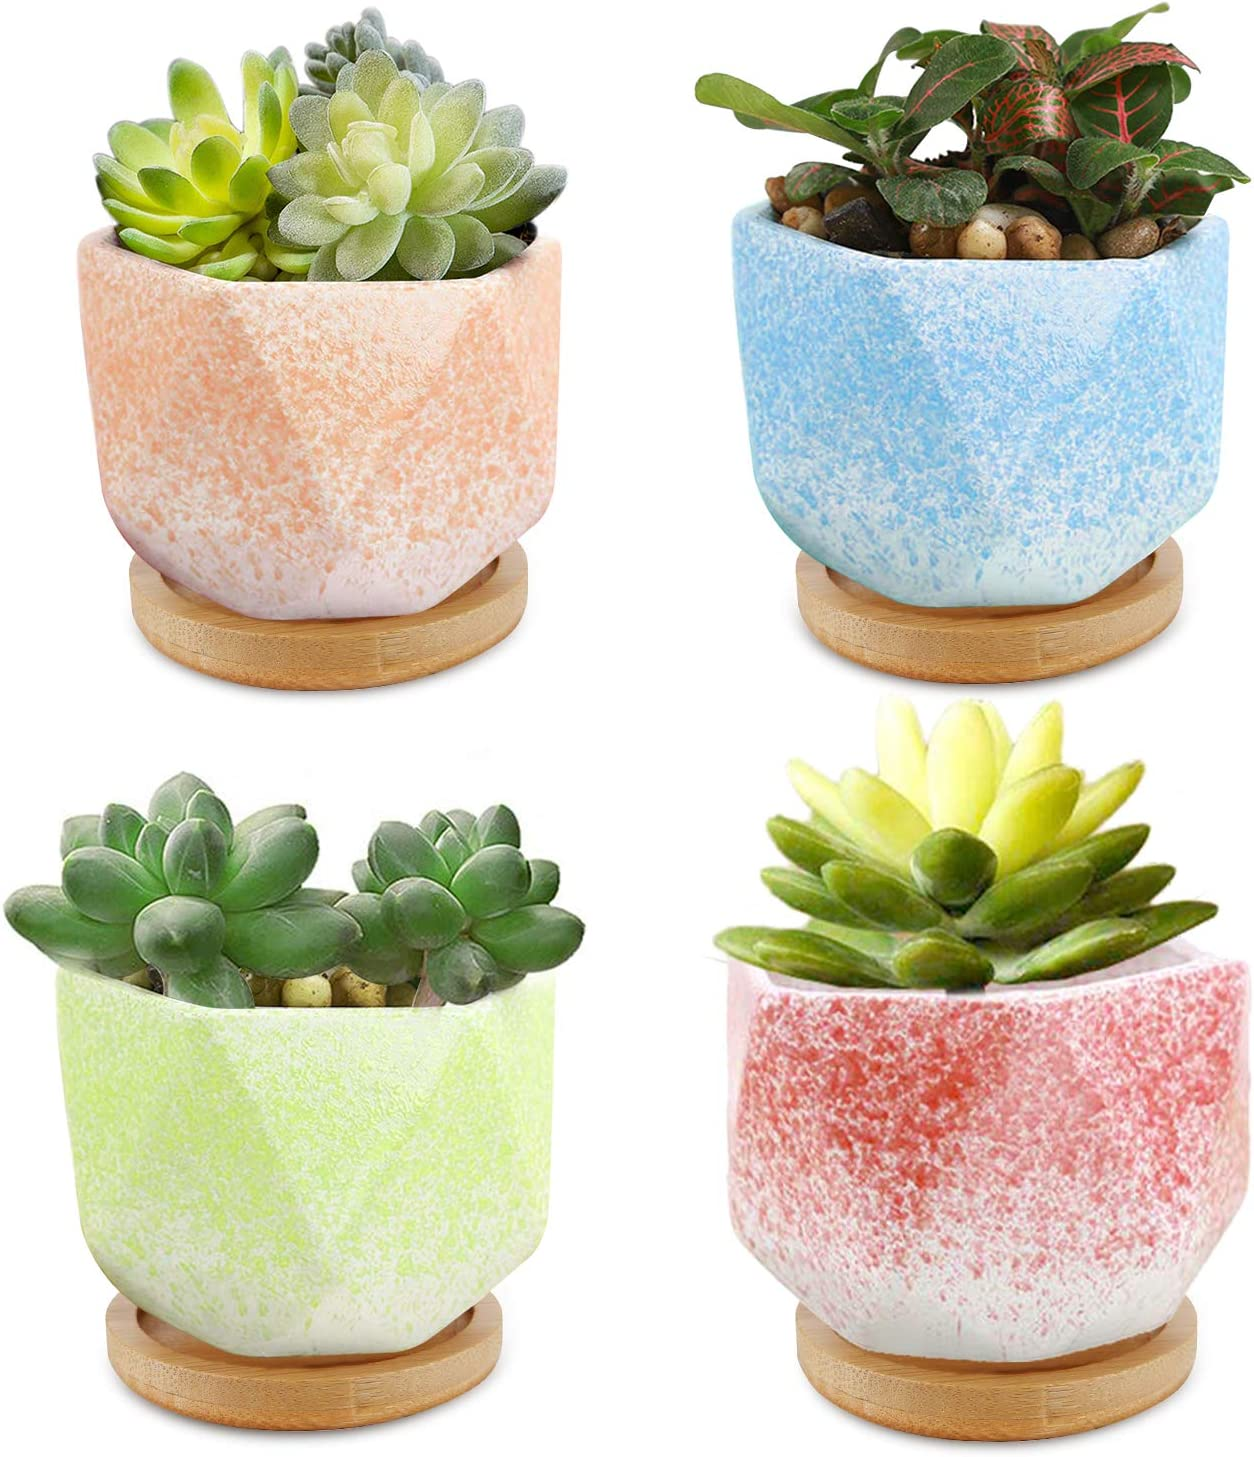 3.75 inch Succulent Pots, 4pcs Pack CONNYAM Ceramic Succulent Cactus Planter Pot with Bamboo Tray for Home and Office Decor, Birthday Wedding Christmas Gift Plants NOT Included